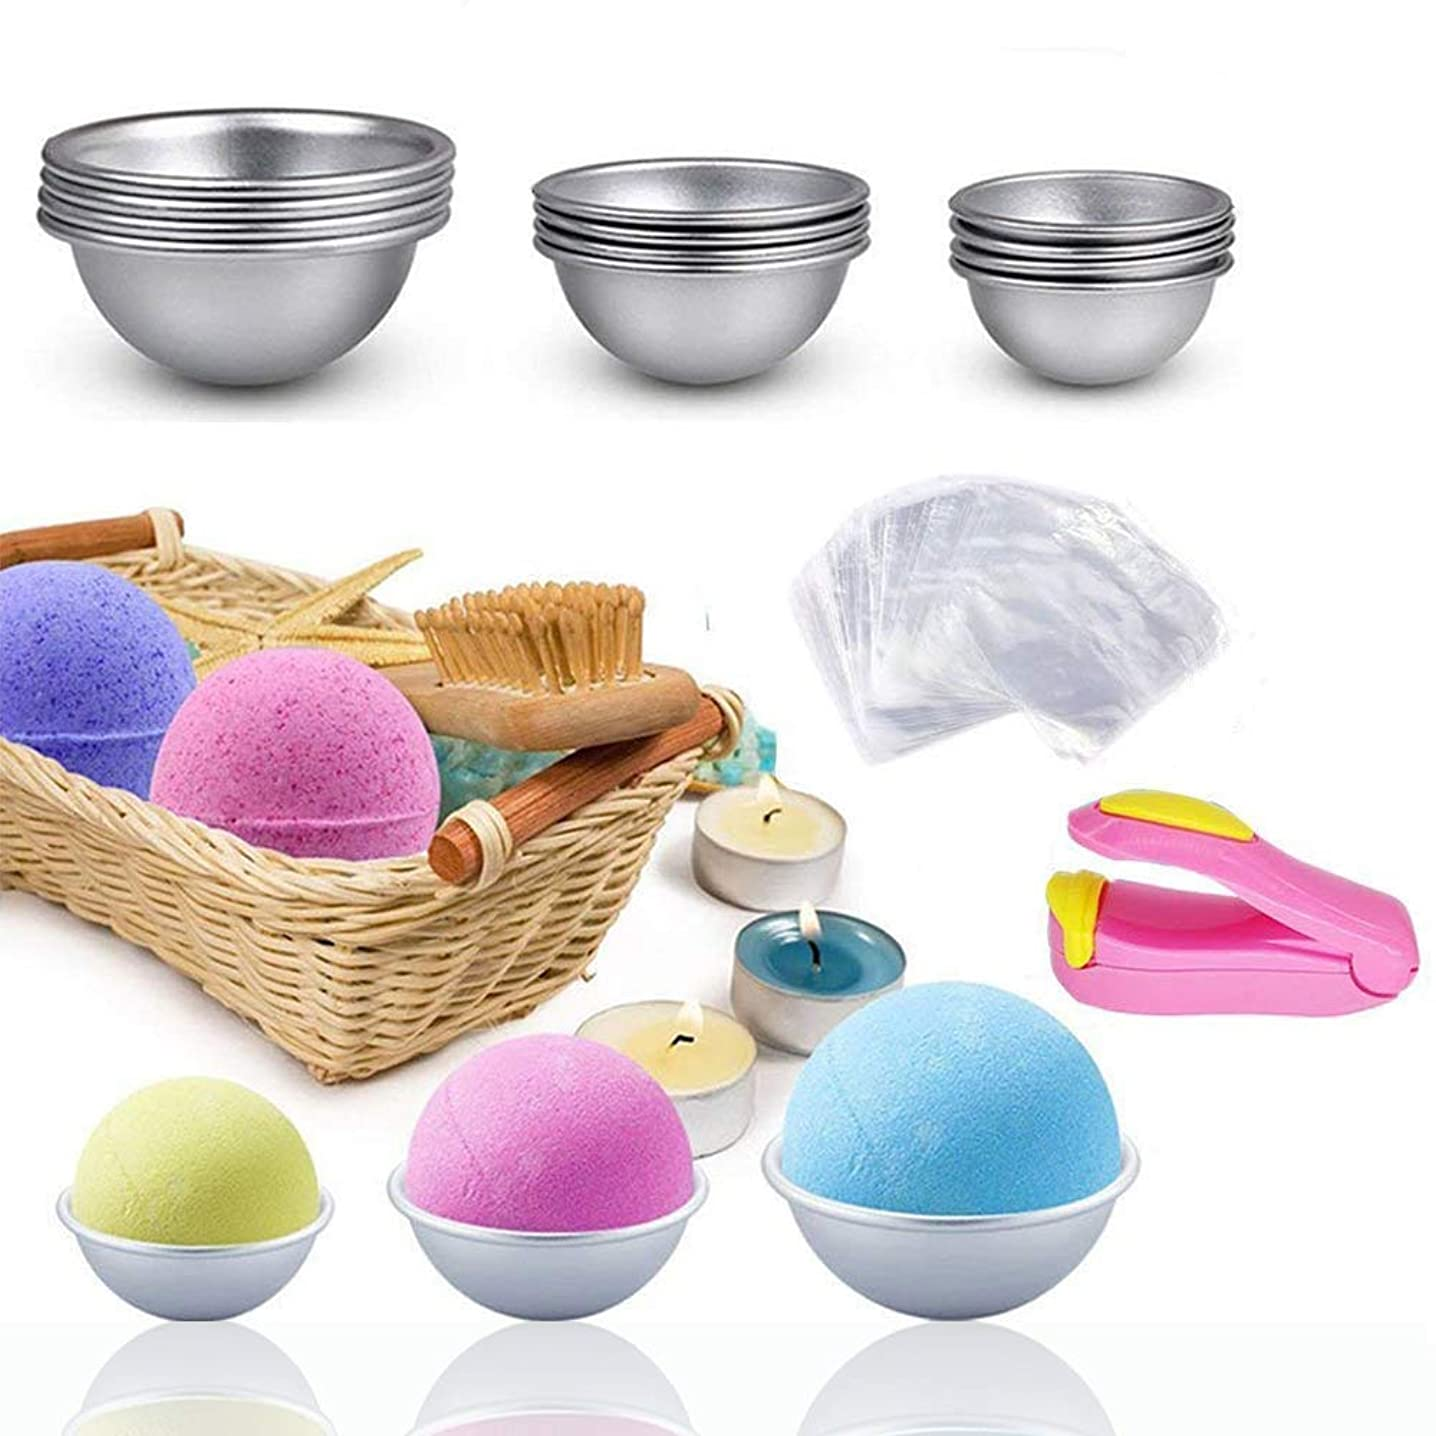 Metal Bath Ball Molds Set for Making Fondant Cakes, Puddings, Pastry, DIY Bath Ball Crafting - 3 Sizes 12 PCS Bath Ball Molds Kit & 100 PCS Shrink Wrap Bags and Mini Sealer